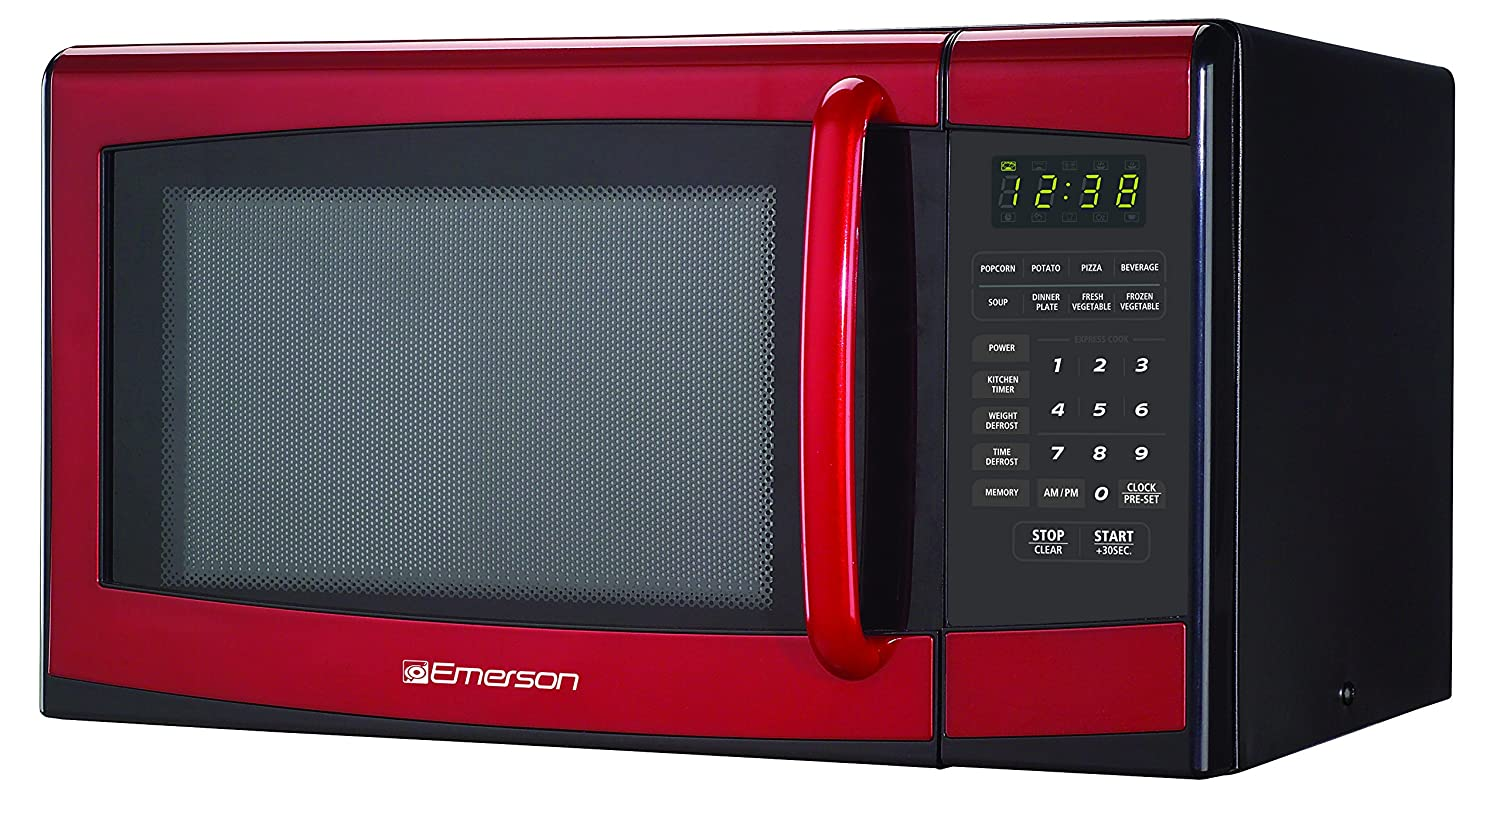 Kitchen cabinets emerson nj - Amazon Com Emerson Mw9998rd 0 9 Cu 900 Watt Touch Control Microwave Oven Red Kitchen Dining